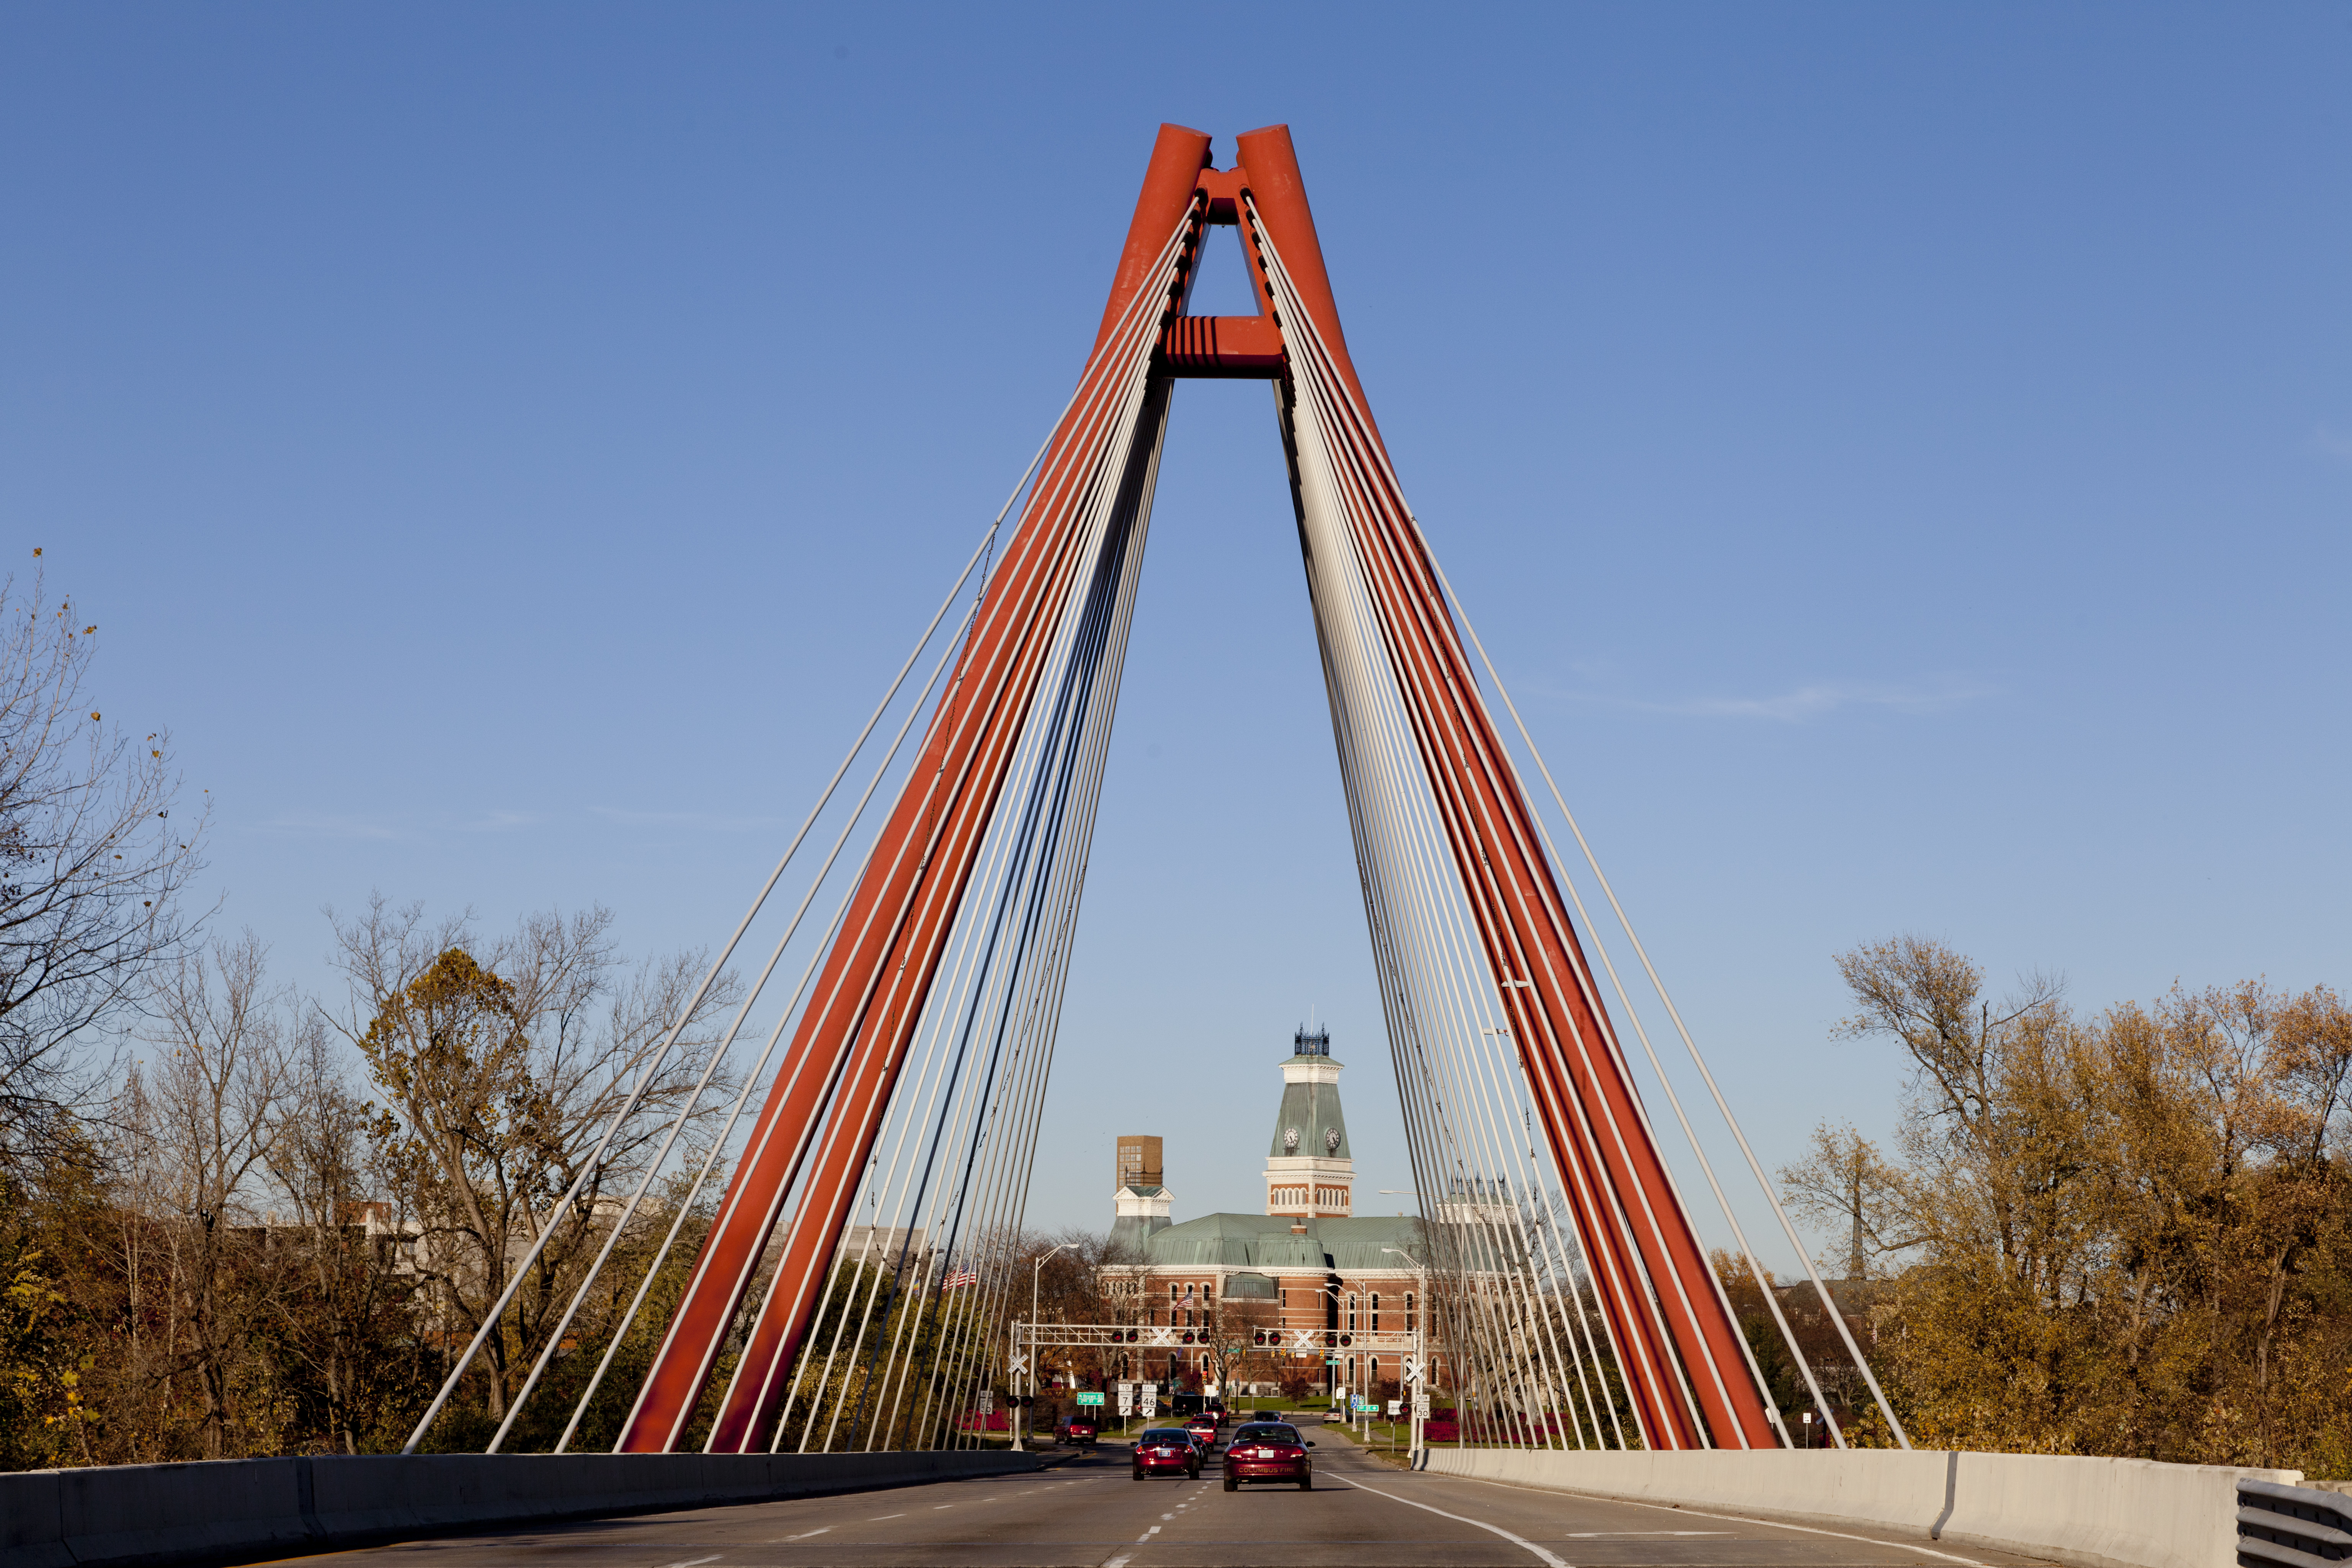 Robert_N._Stewart_Bridge,_Columbus,_Indiana_LCCN2013650712.jpg